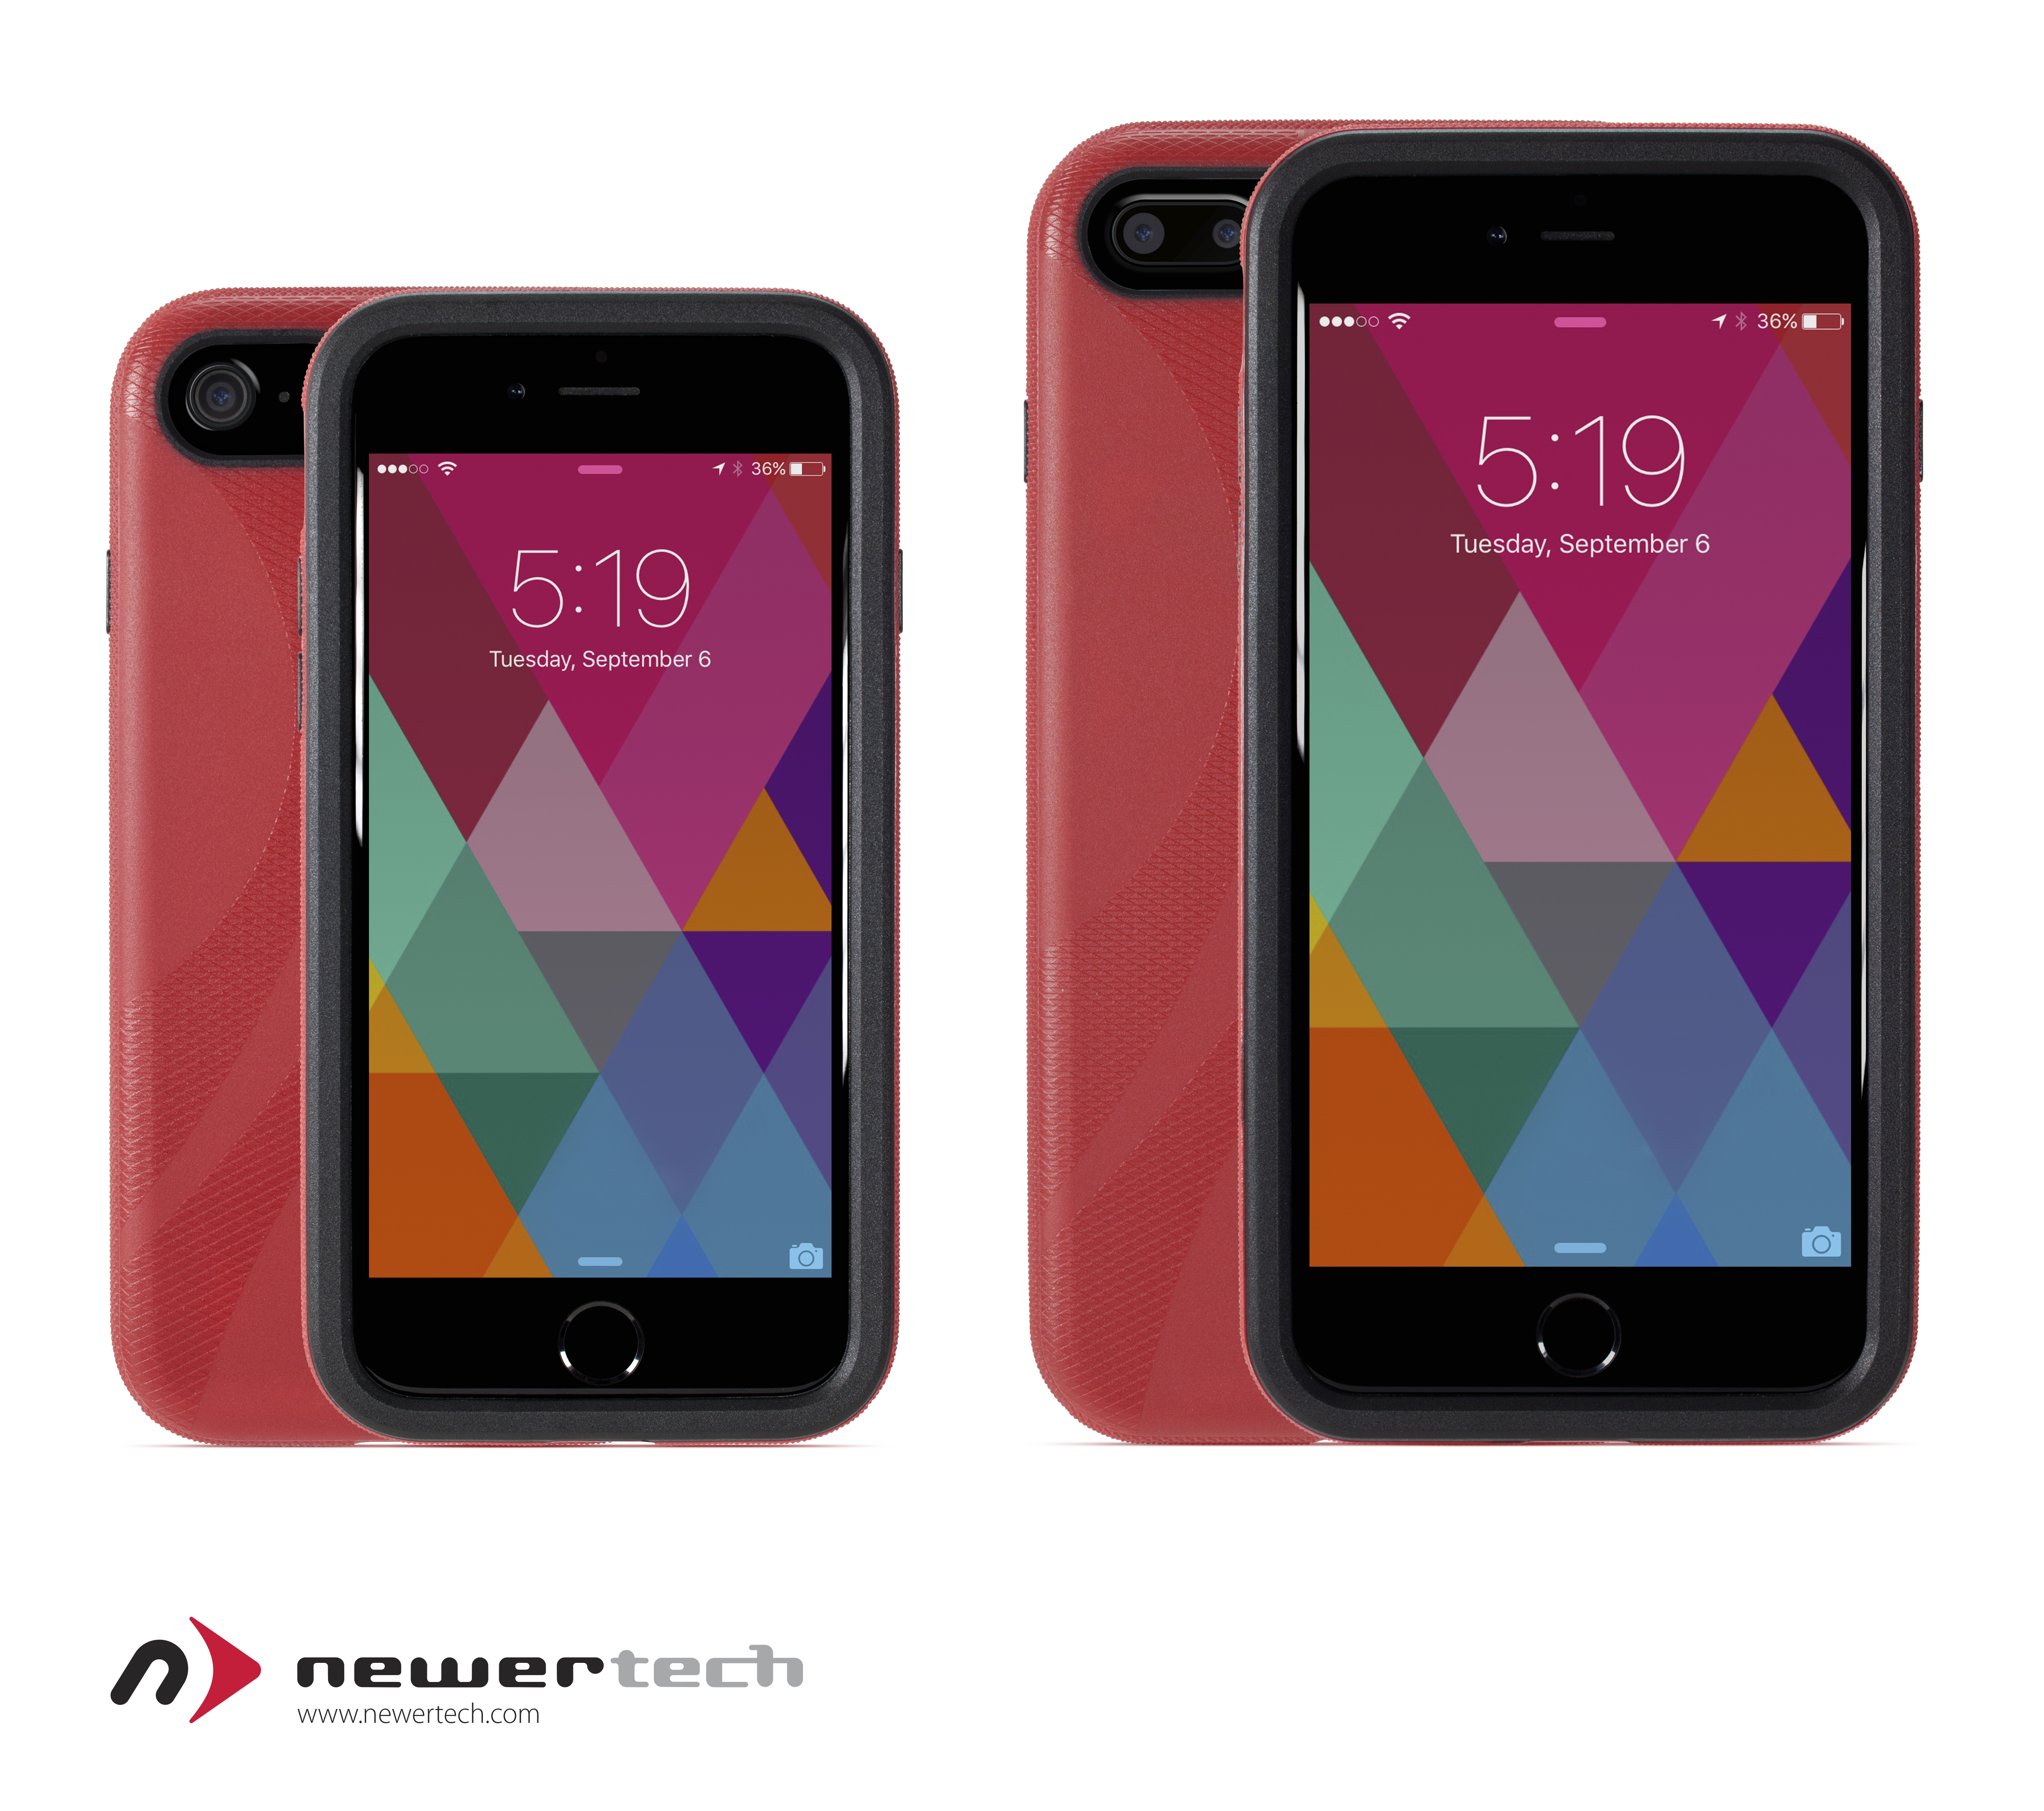 NewerTech NuGuard KXs Case for iPhone 7, 6 & 6s, Screen Protector for iPhone/iPad